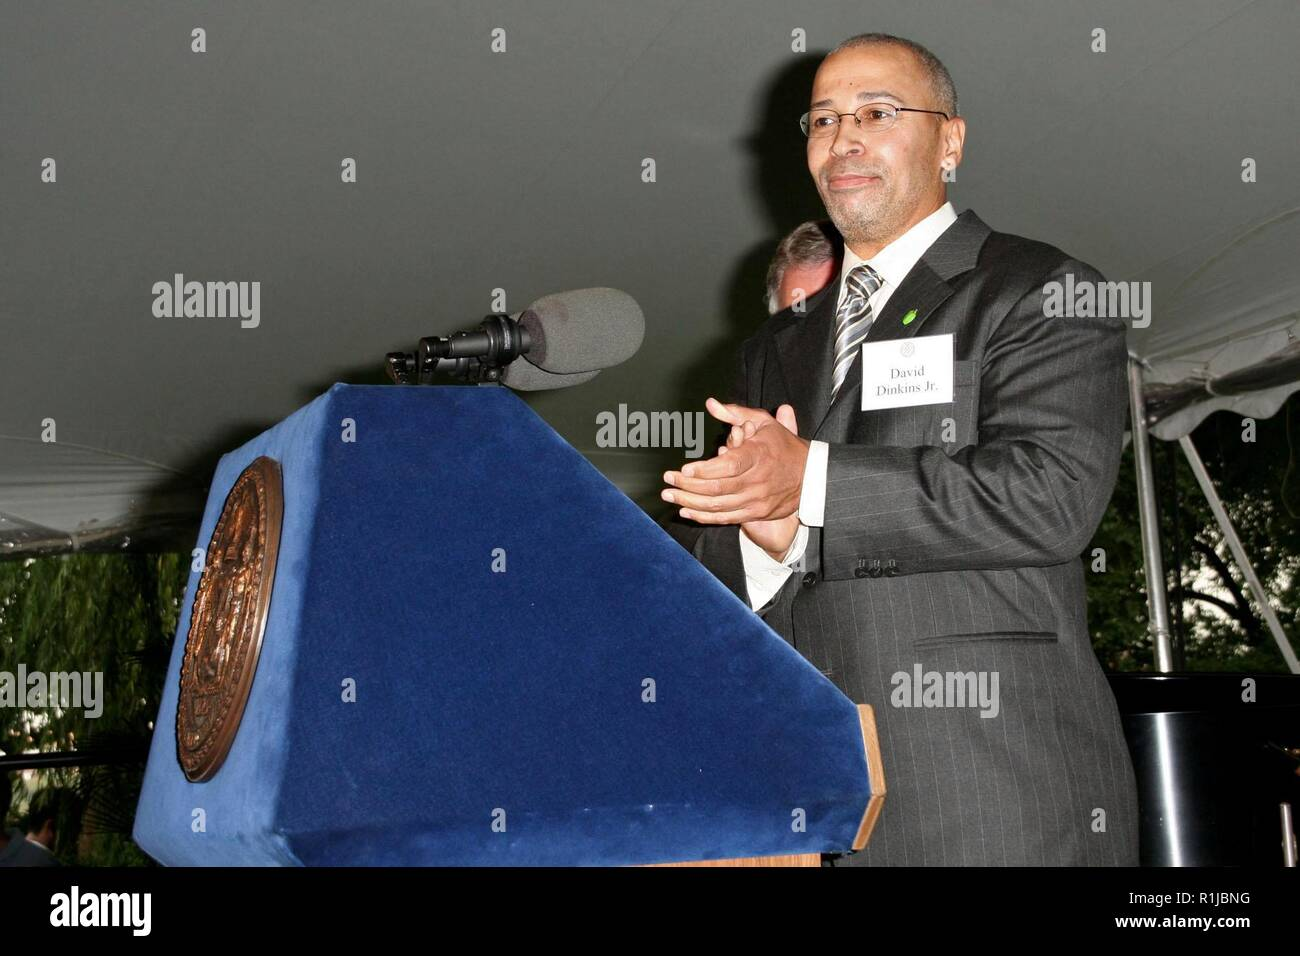 david dinkins jr high resolution stock photography and images alamy https www alamy com new york ny july 16 david dinkins jr at david dinkins 80th birthday party at gracie mansion on monday july 16 2007 in new york ny photo by steve macksd mack pictures image224753804 html